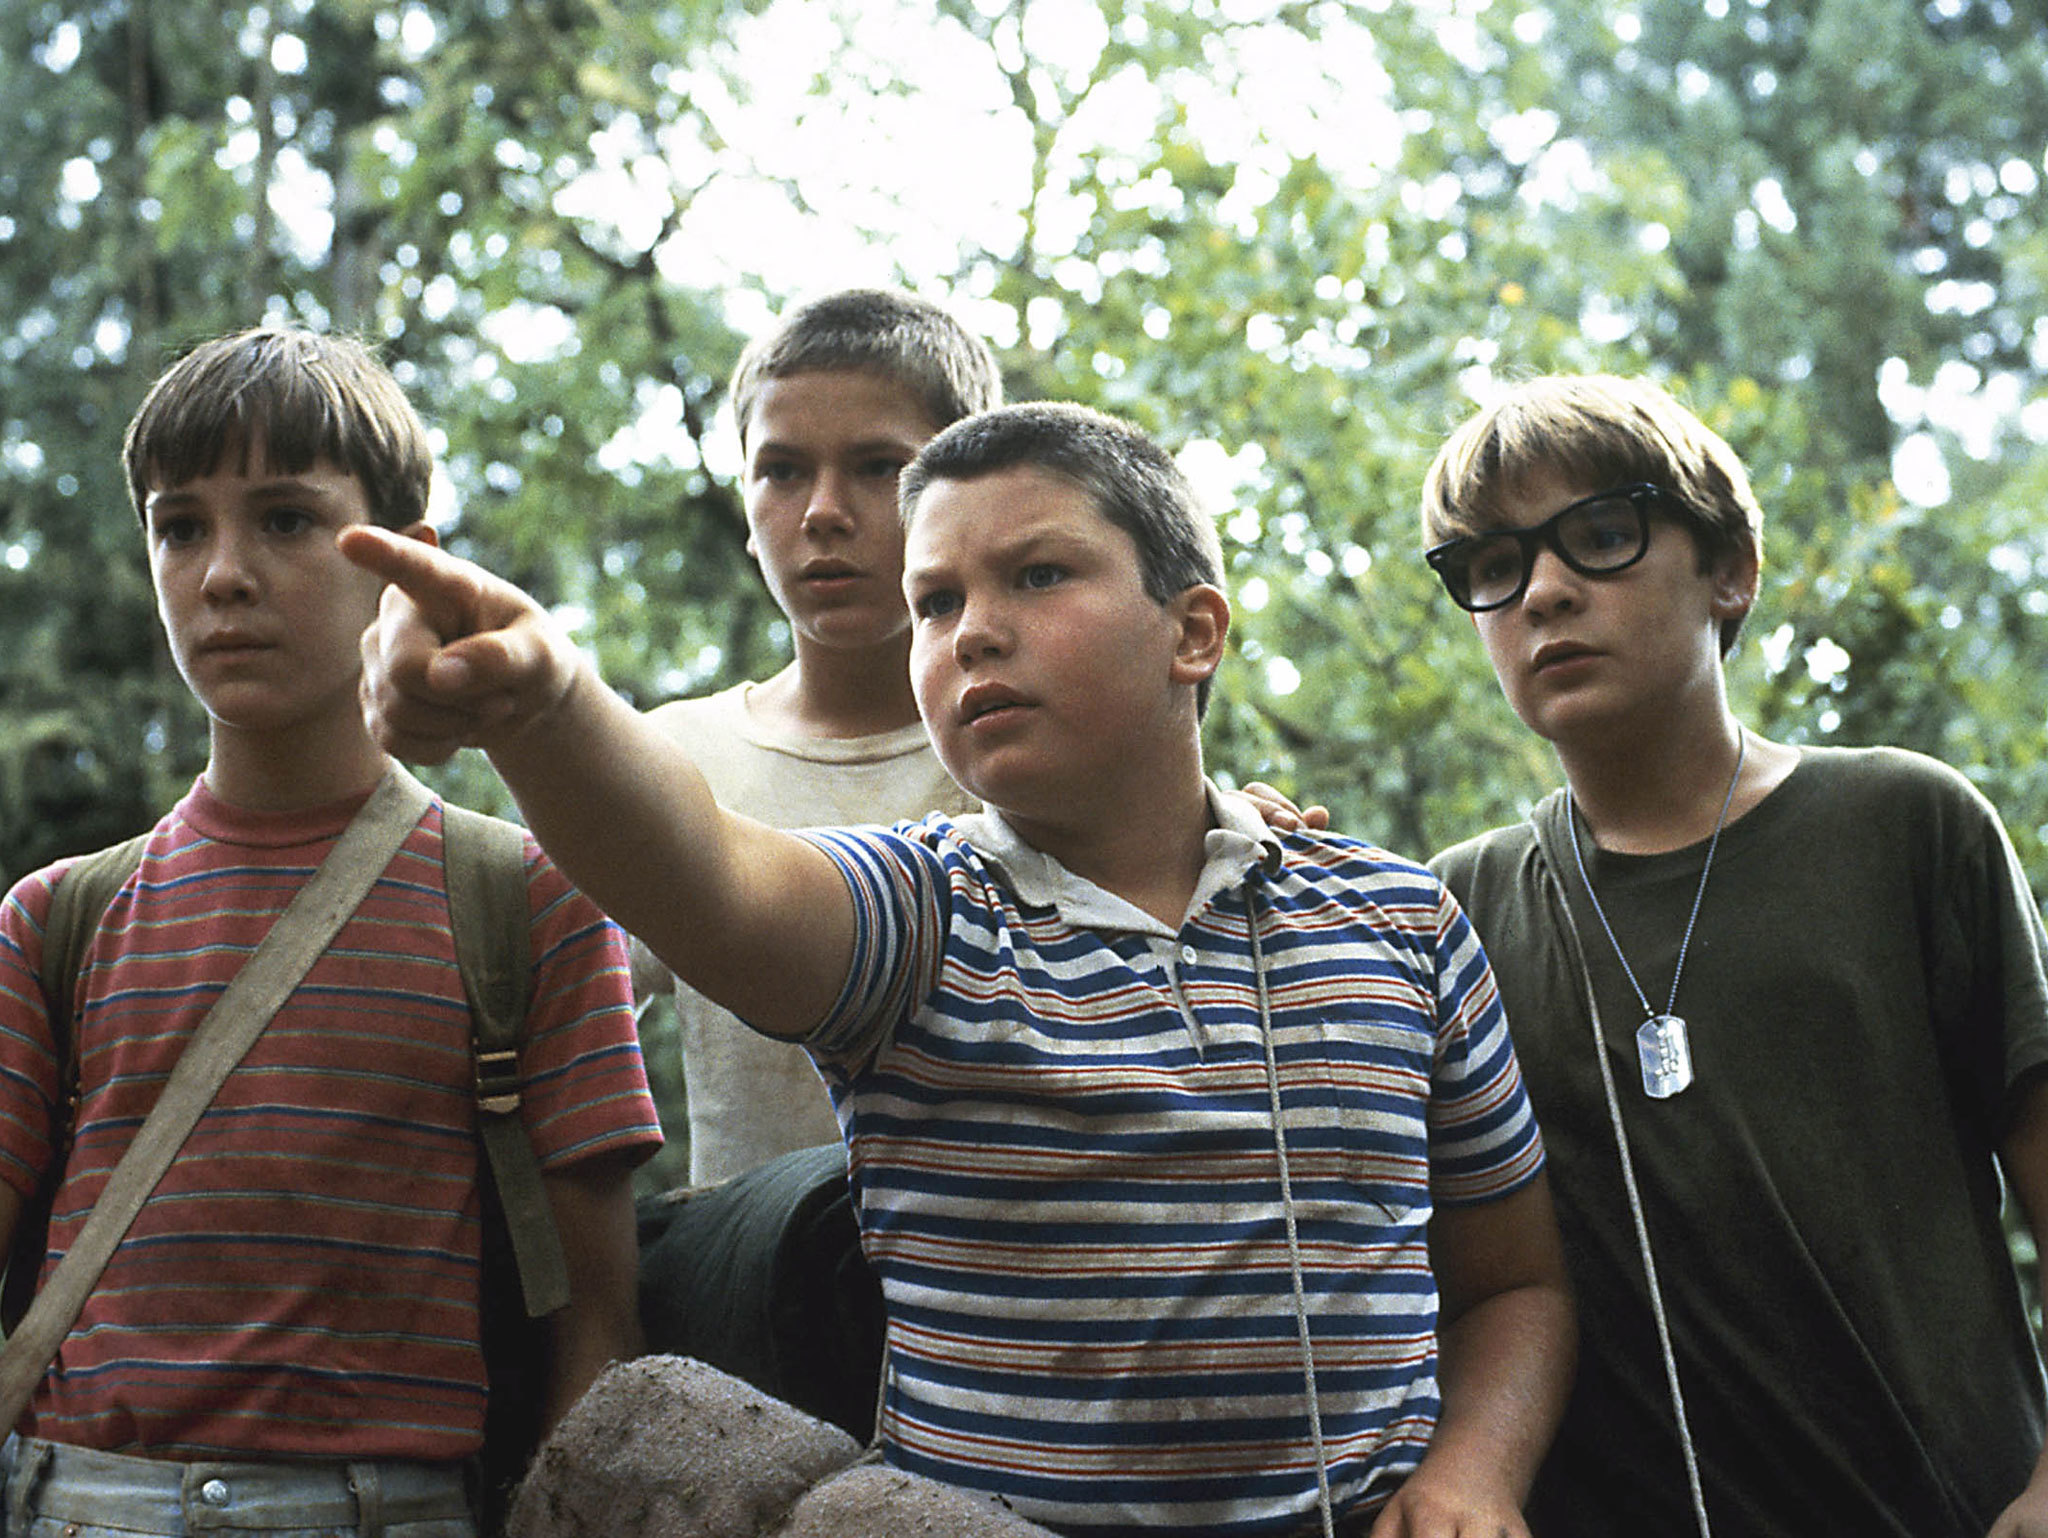 20 best friendship movies: Stand By Me